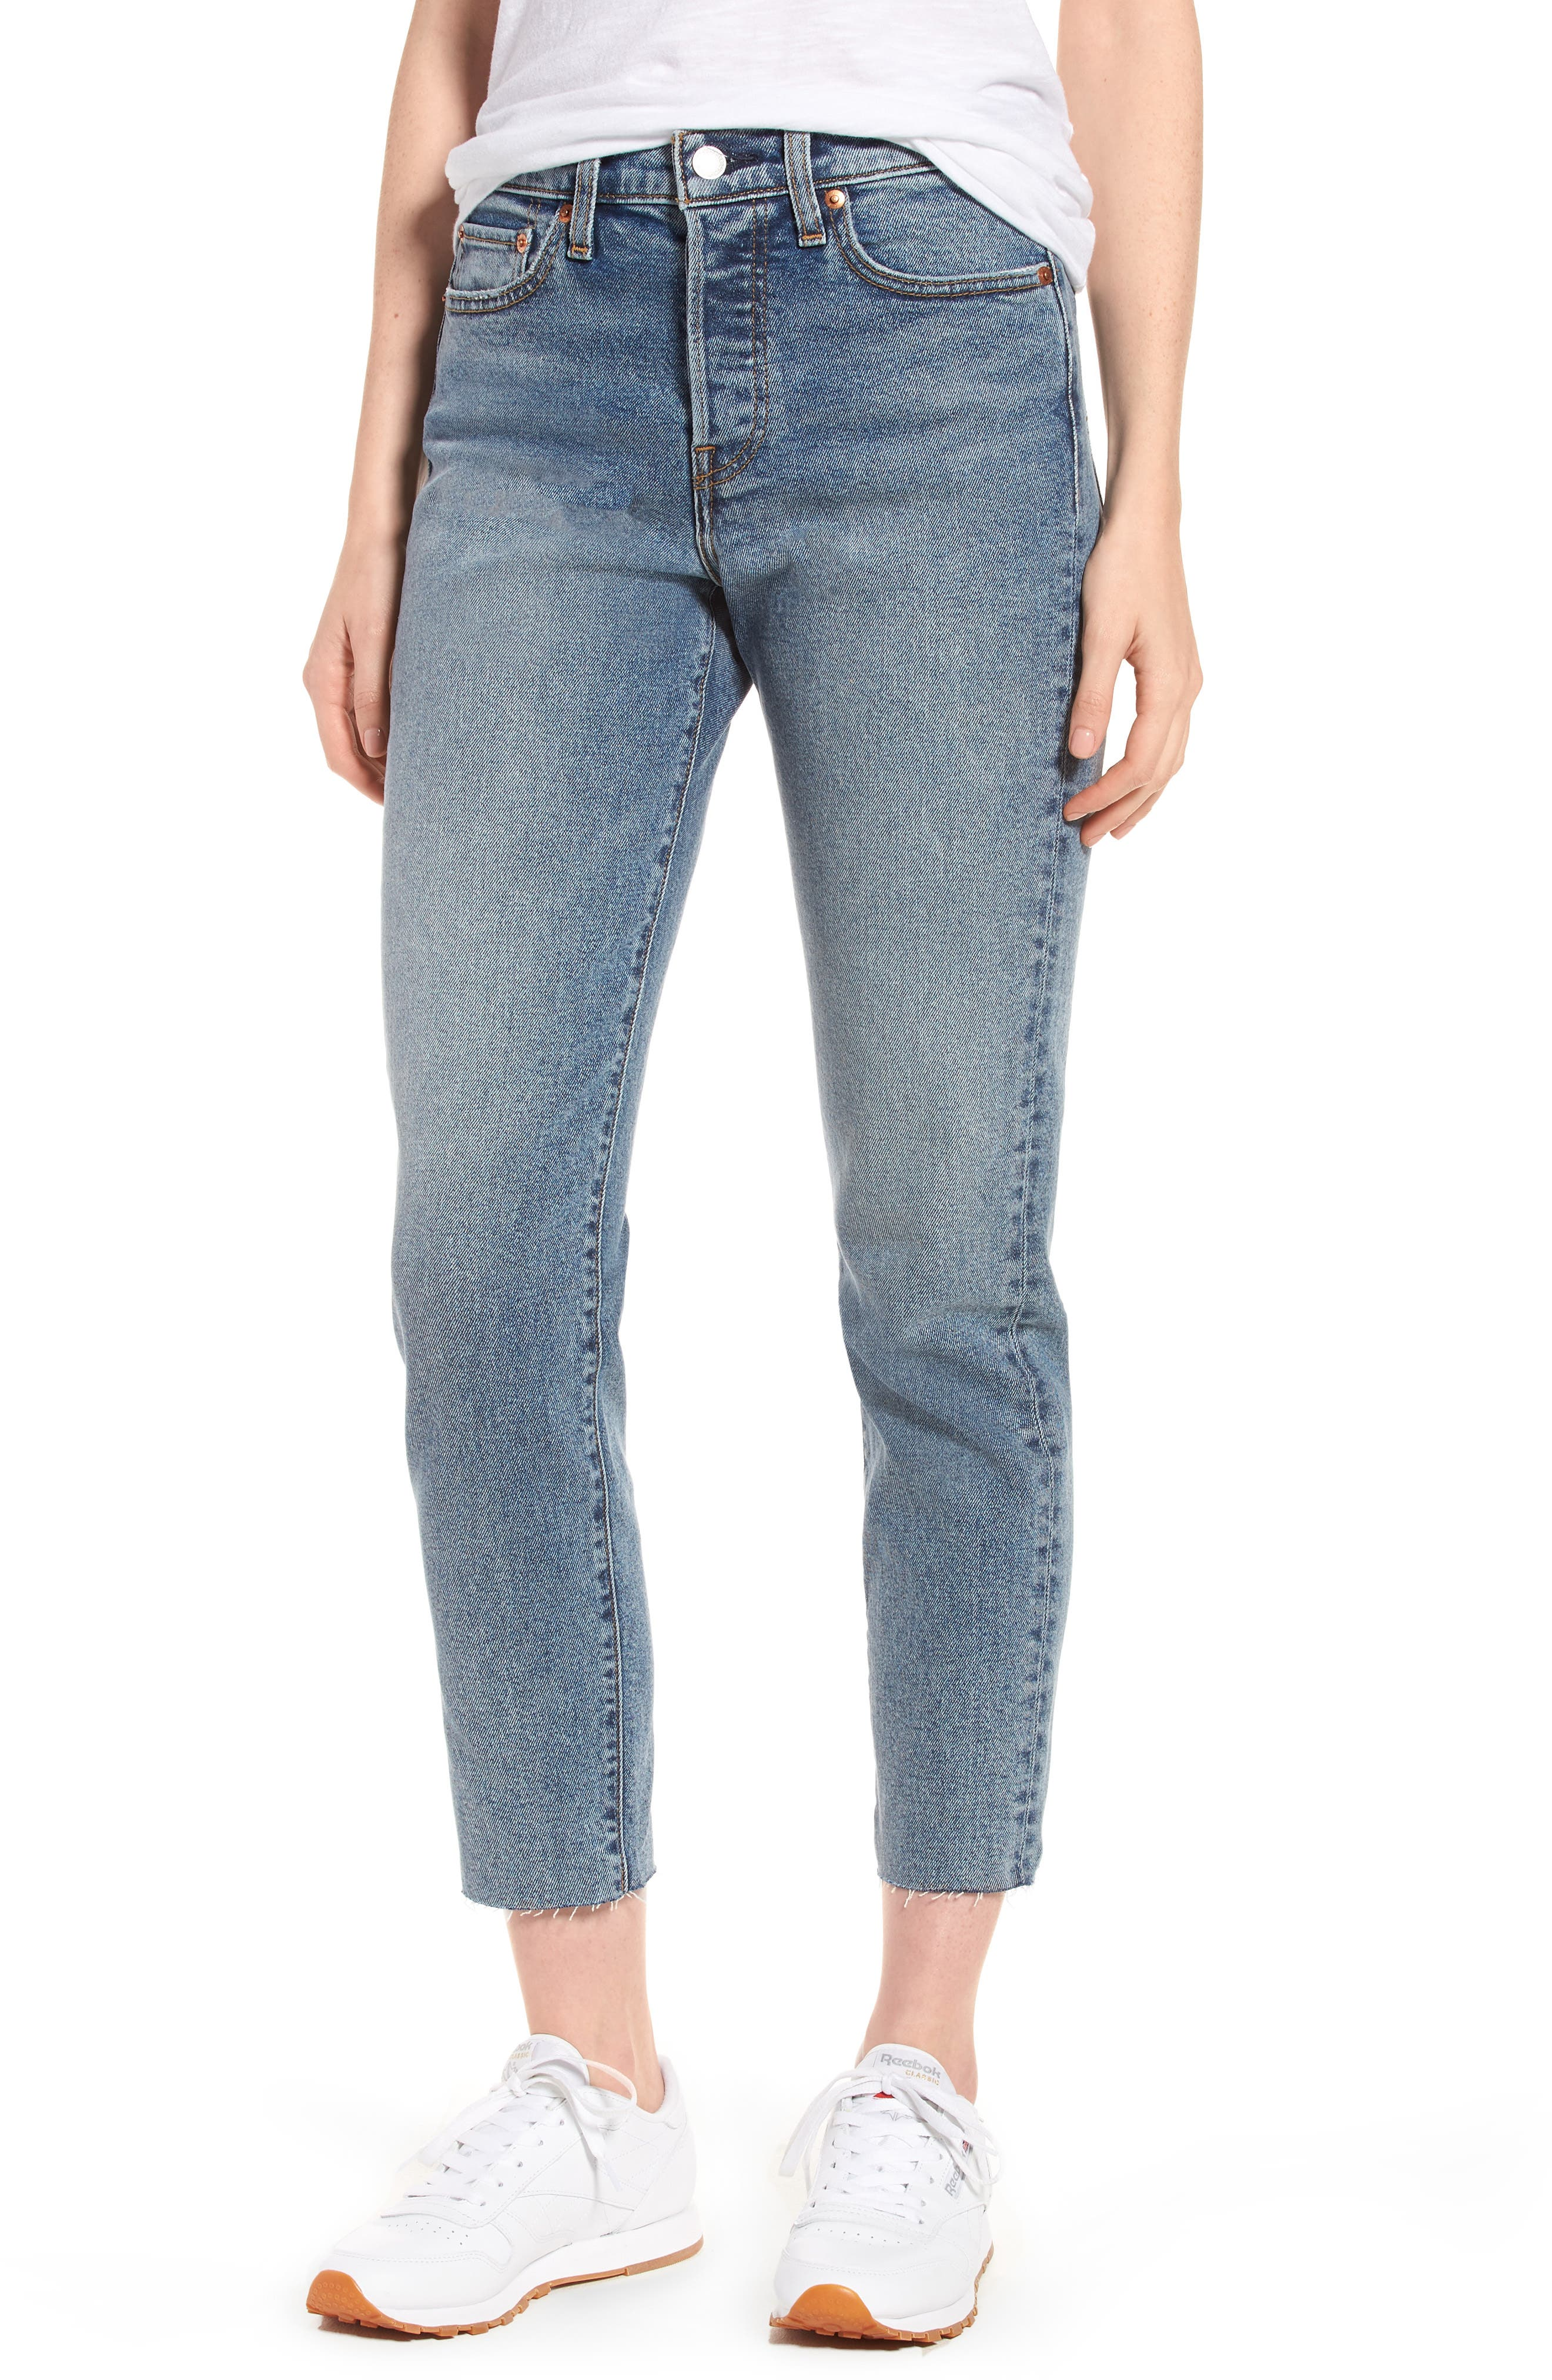 Wedgie Icon Fit High Waist Crop Jeans,                             Main thumbnail 1, color,                             401